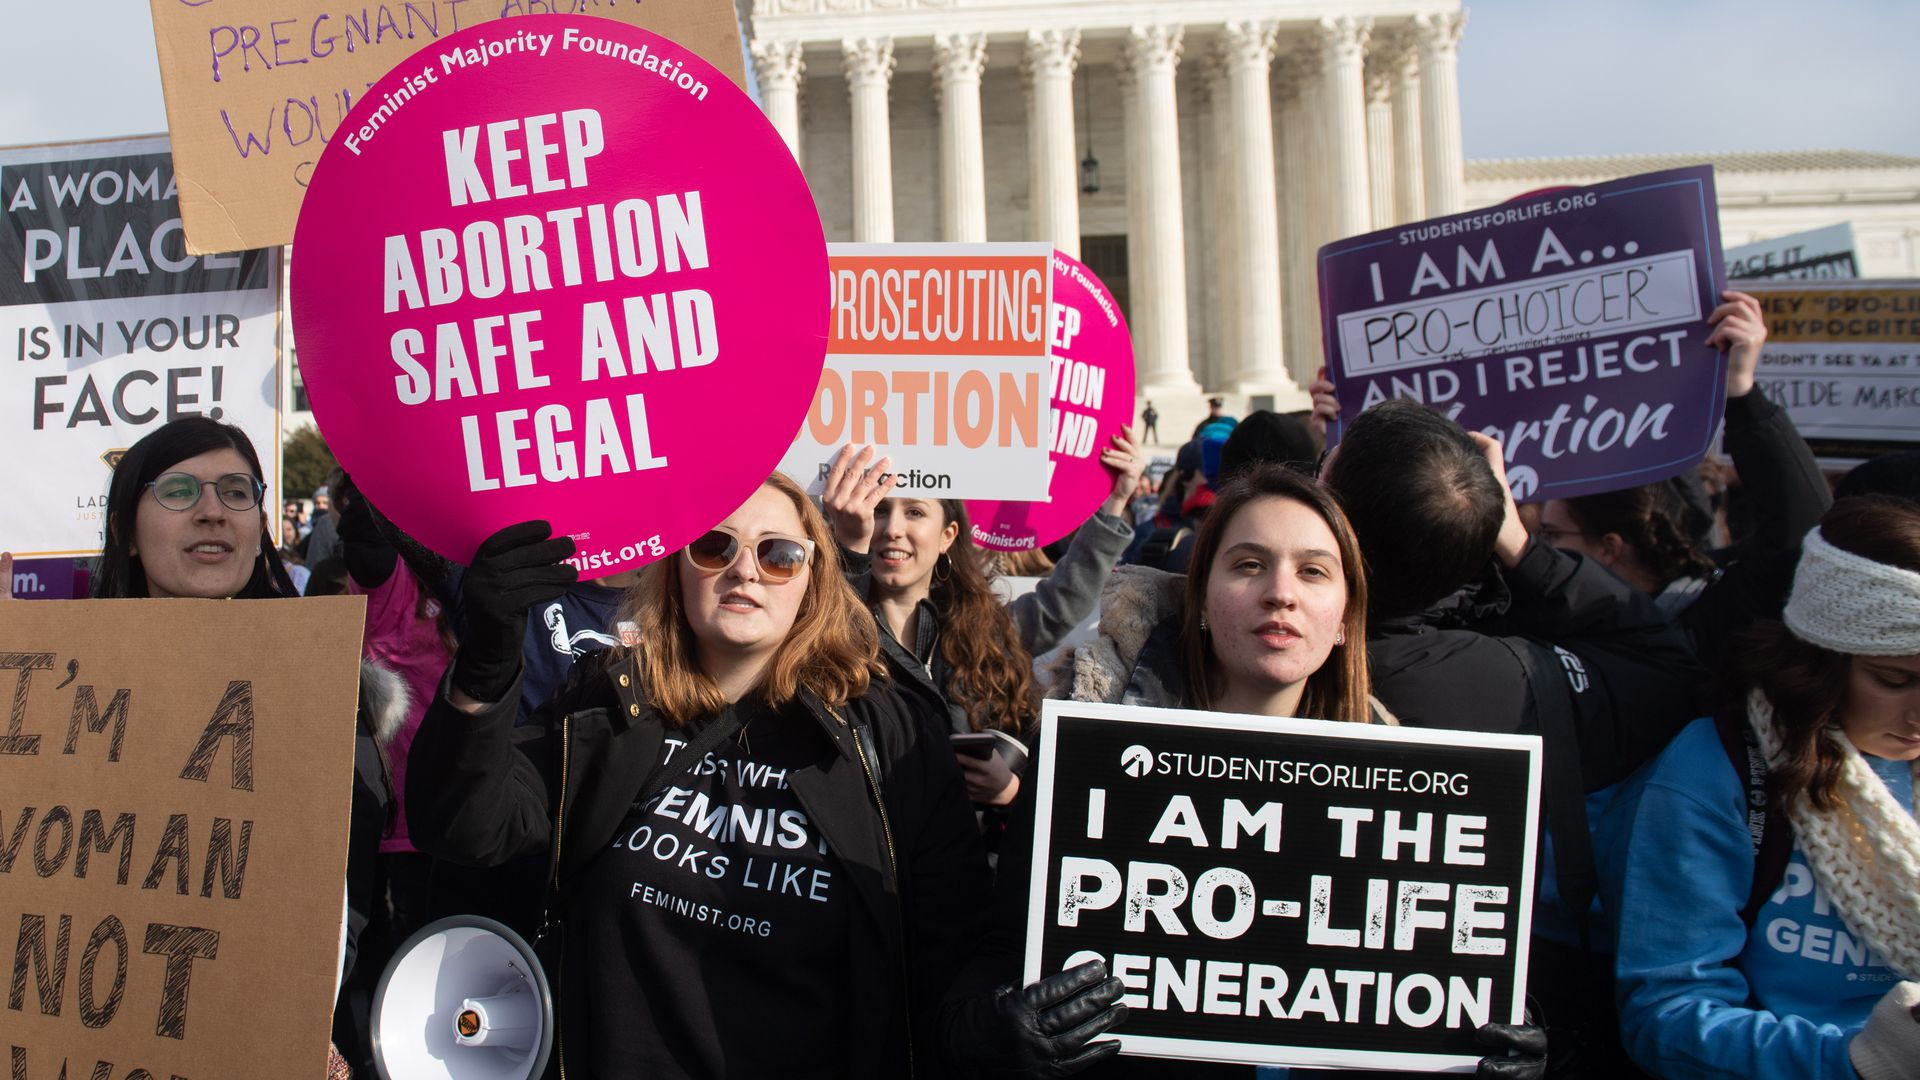 Pro-choice and anti-abortion activists protesting outside the U.S, Supreme Court.